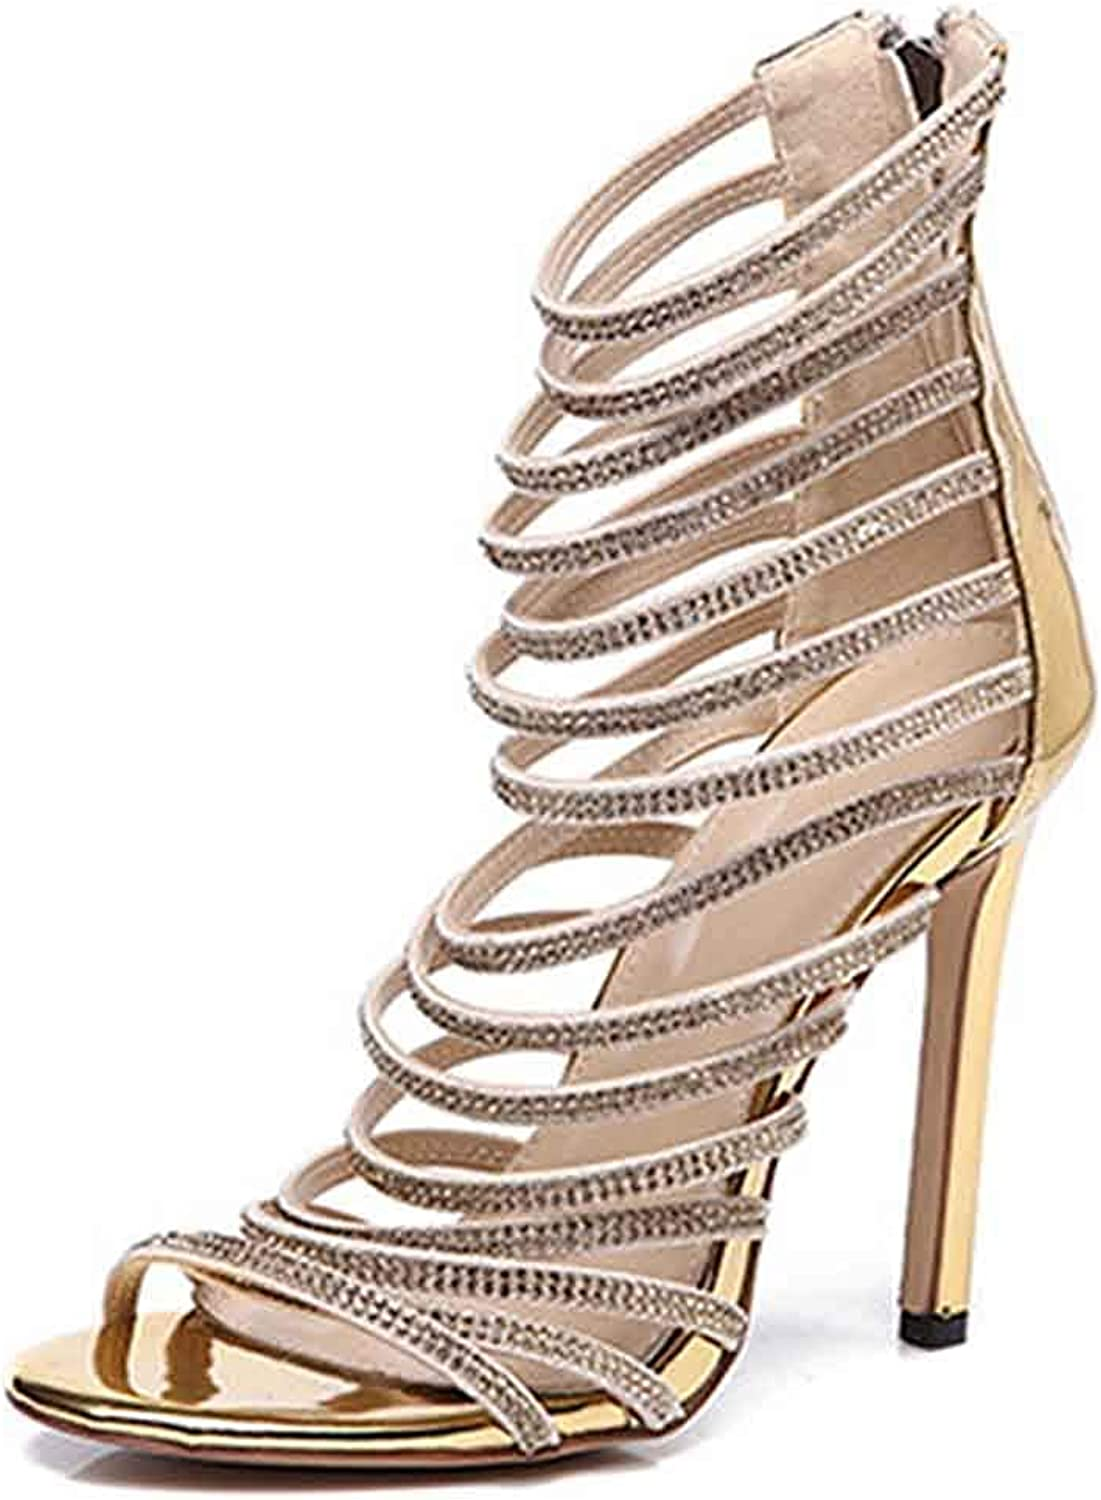 Unm Women's Strappy Sandals Rhinestone - Ankle Strap Open Toe Zipper - Sexy Stiletto High Heels